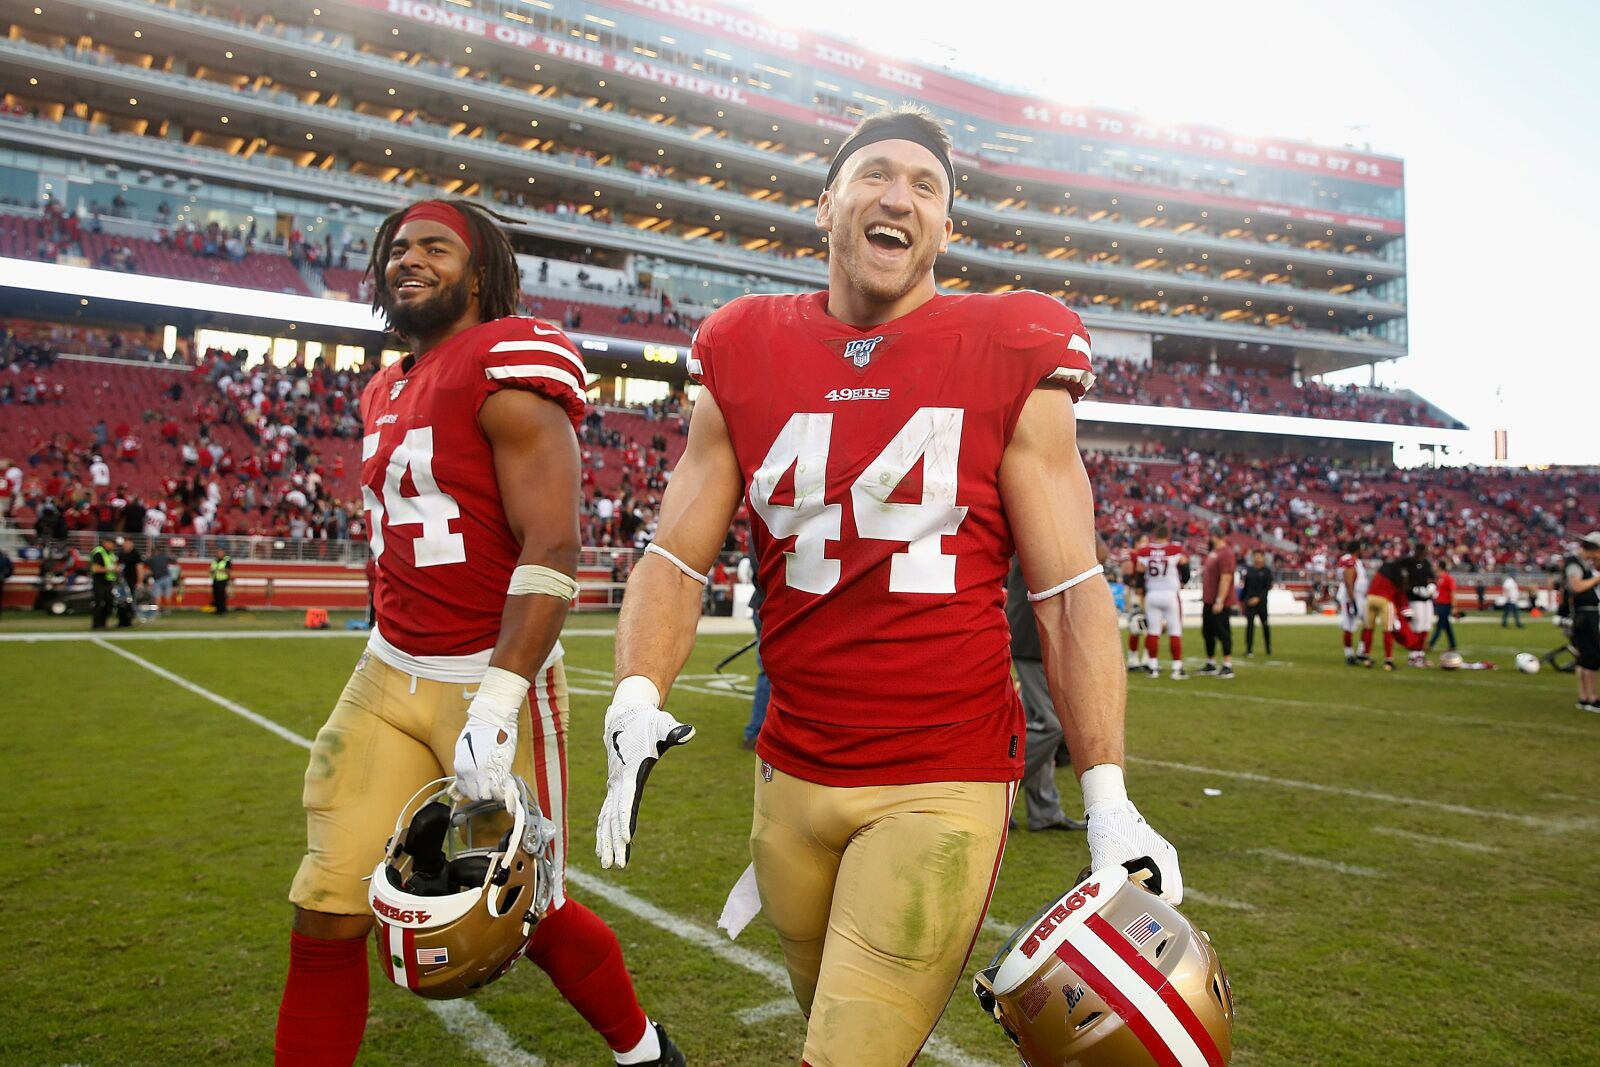 49ers: Notes from Week 11 and looking ahead to Week 17